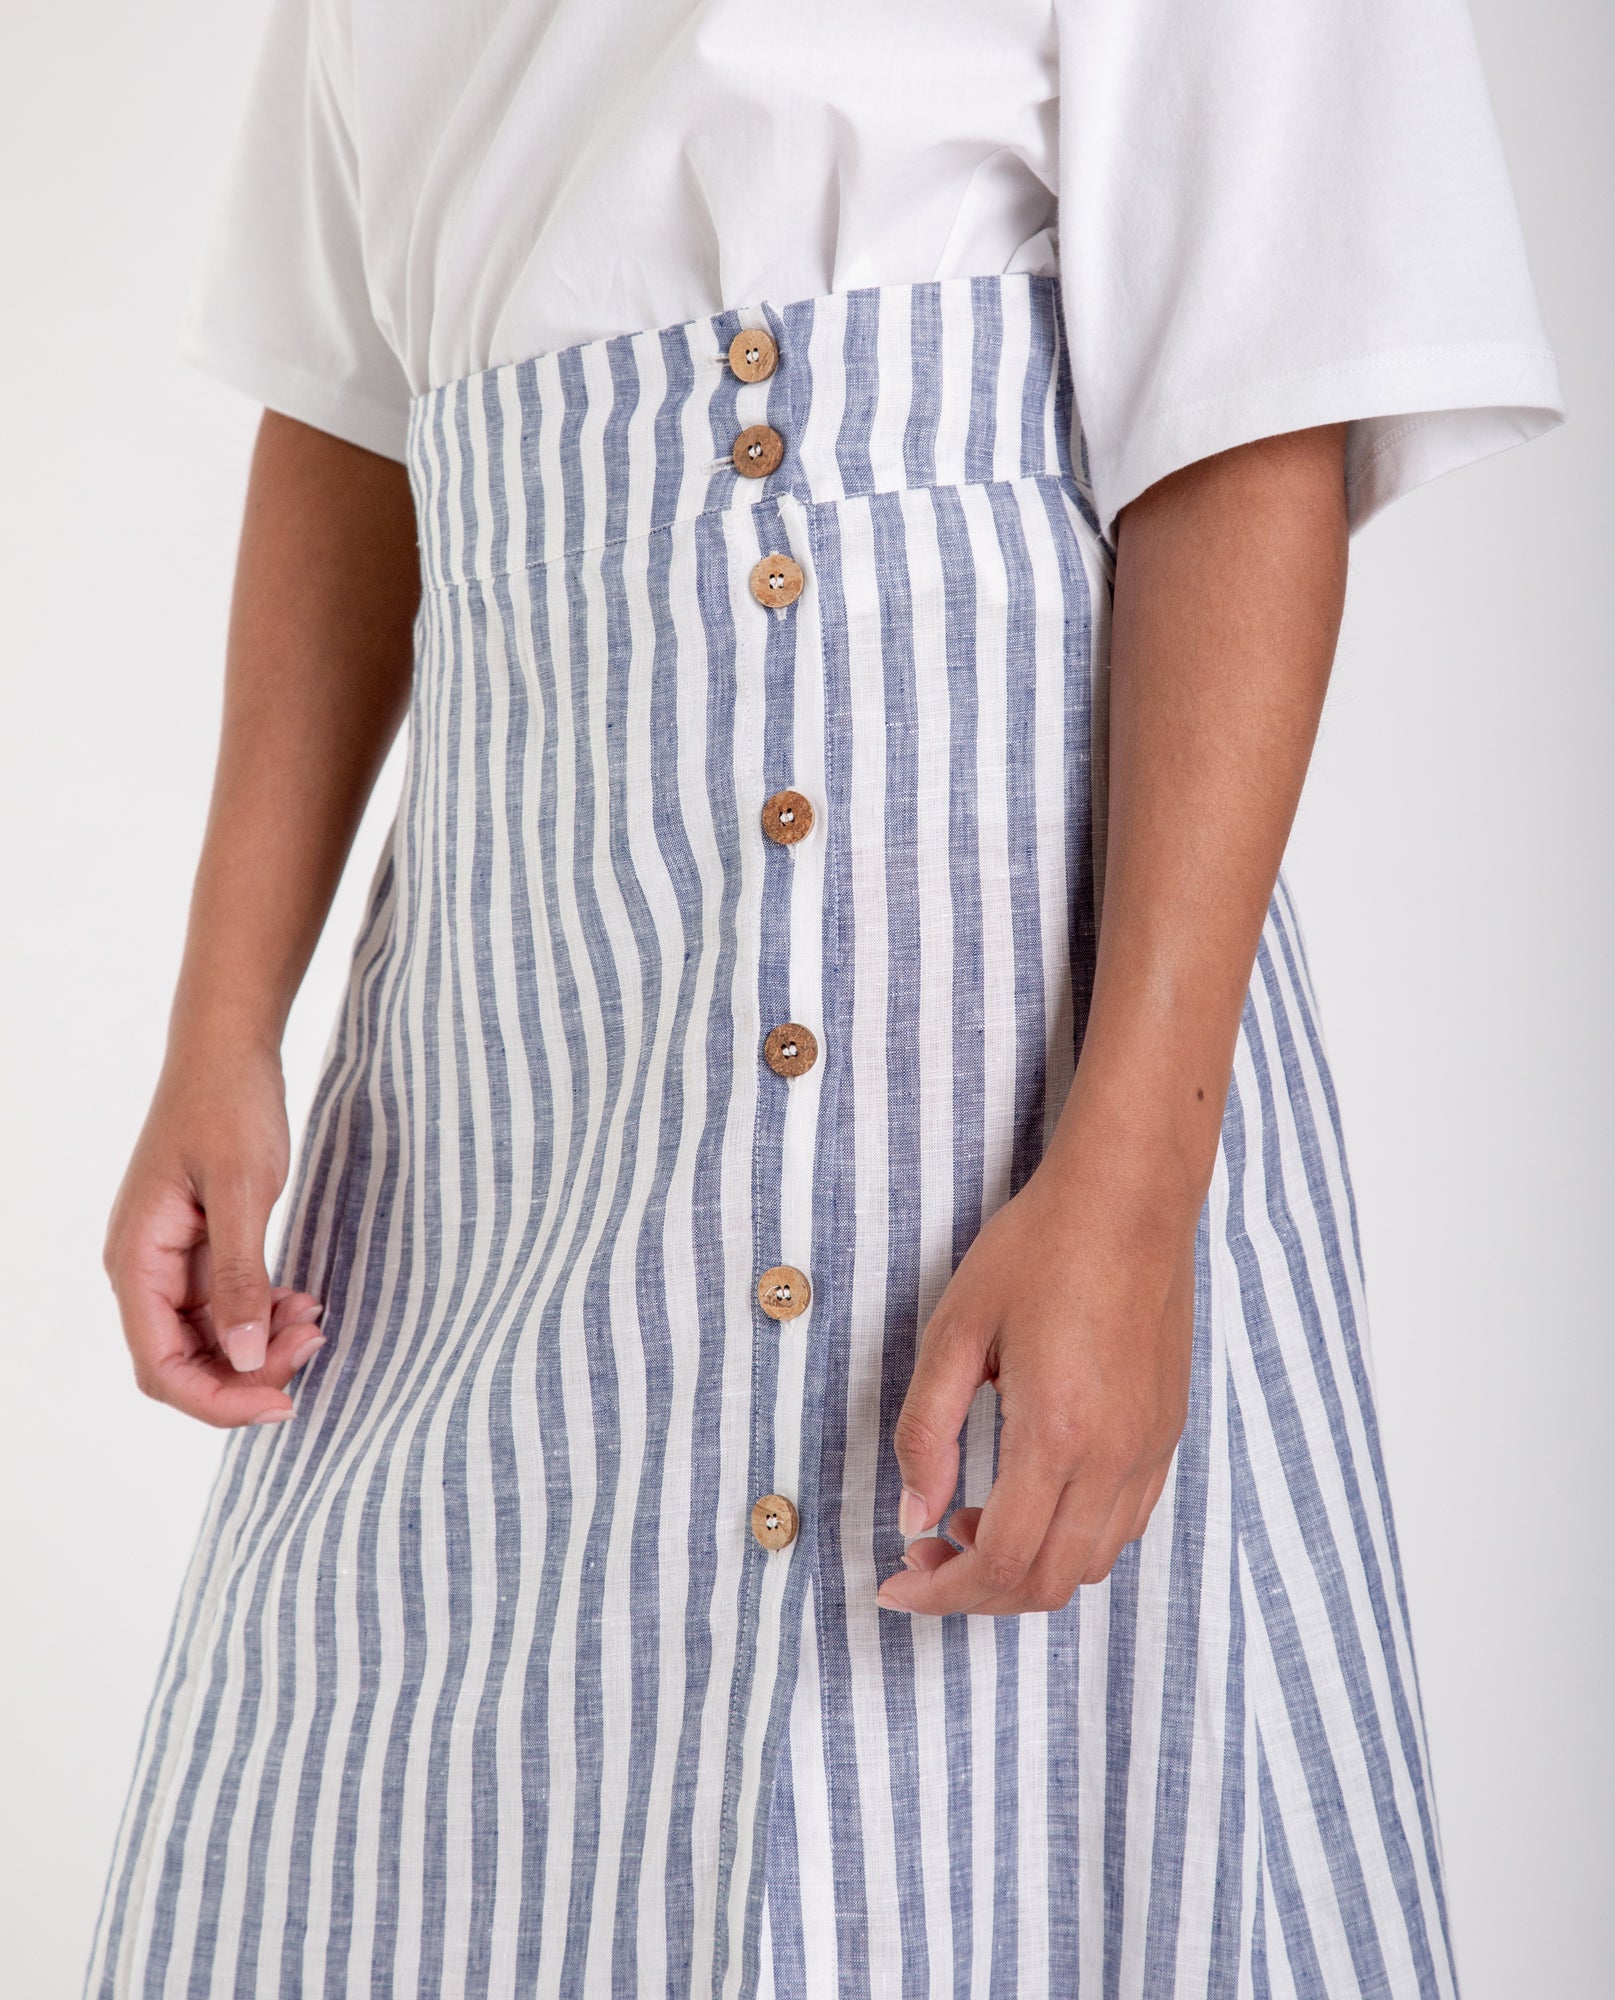 SAMANTHA-SUE Linen Skirt In Blue Stripe